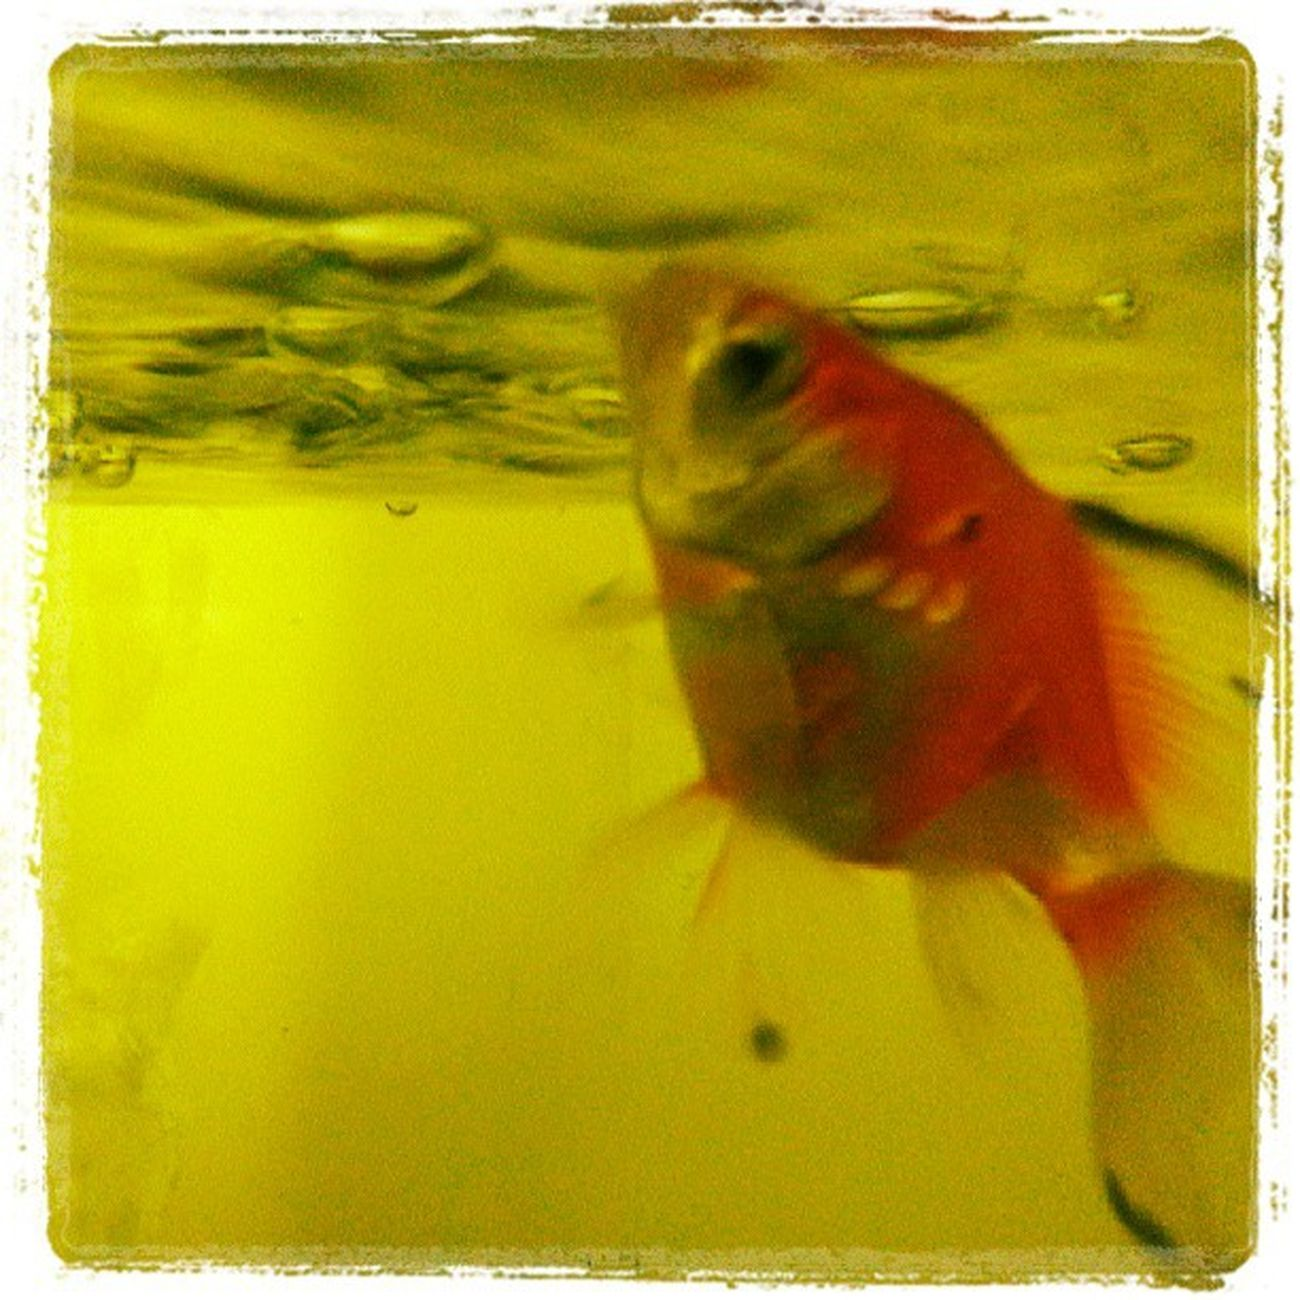 My fish eatting ^-^